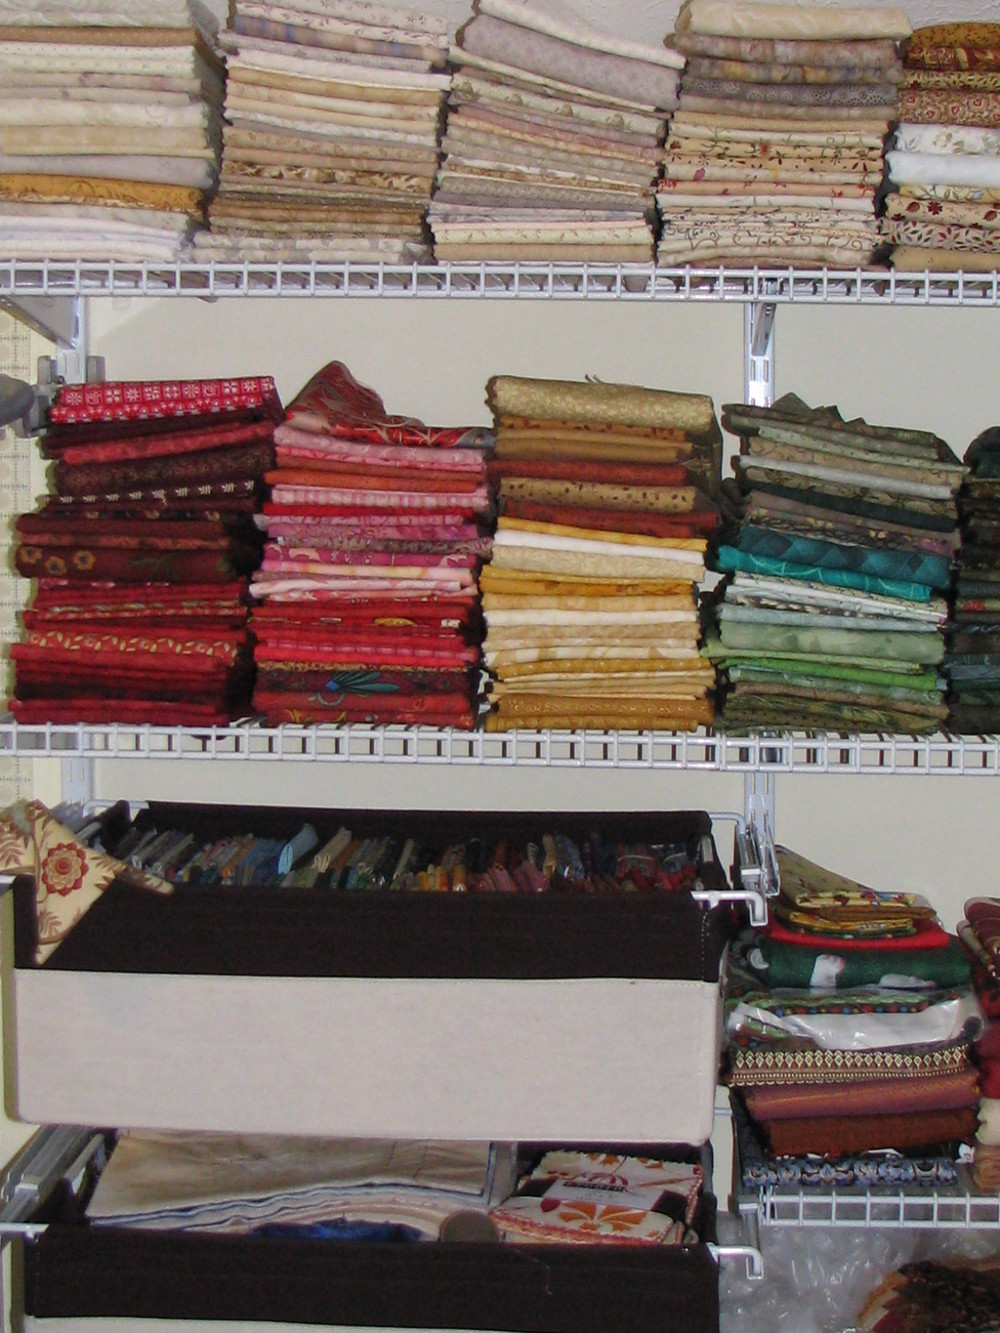 My stash when I first set up this shelving system. It doesn't look all that different now 10 years later. In fact, I even still have a lot of those same fabrics!